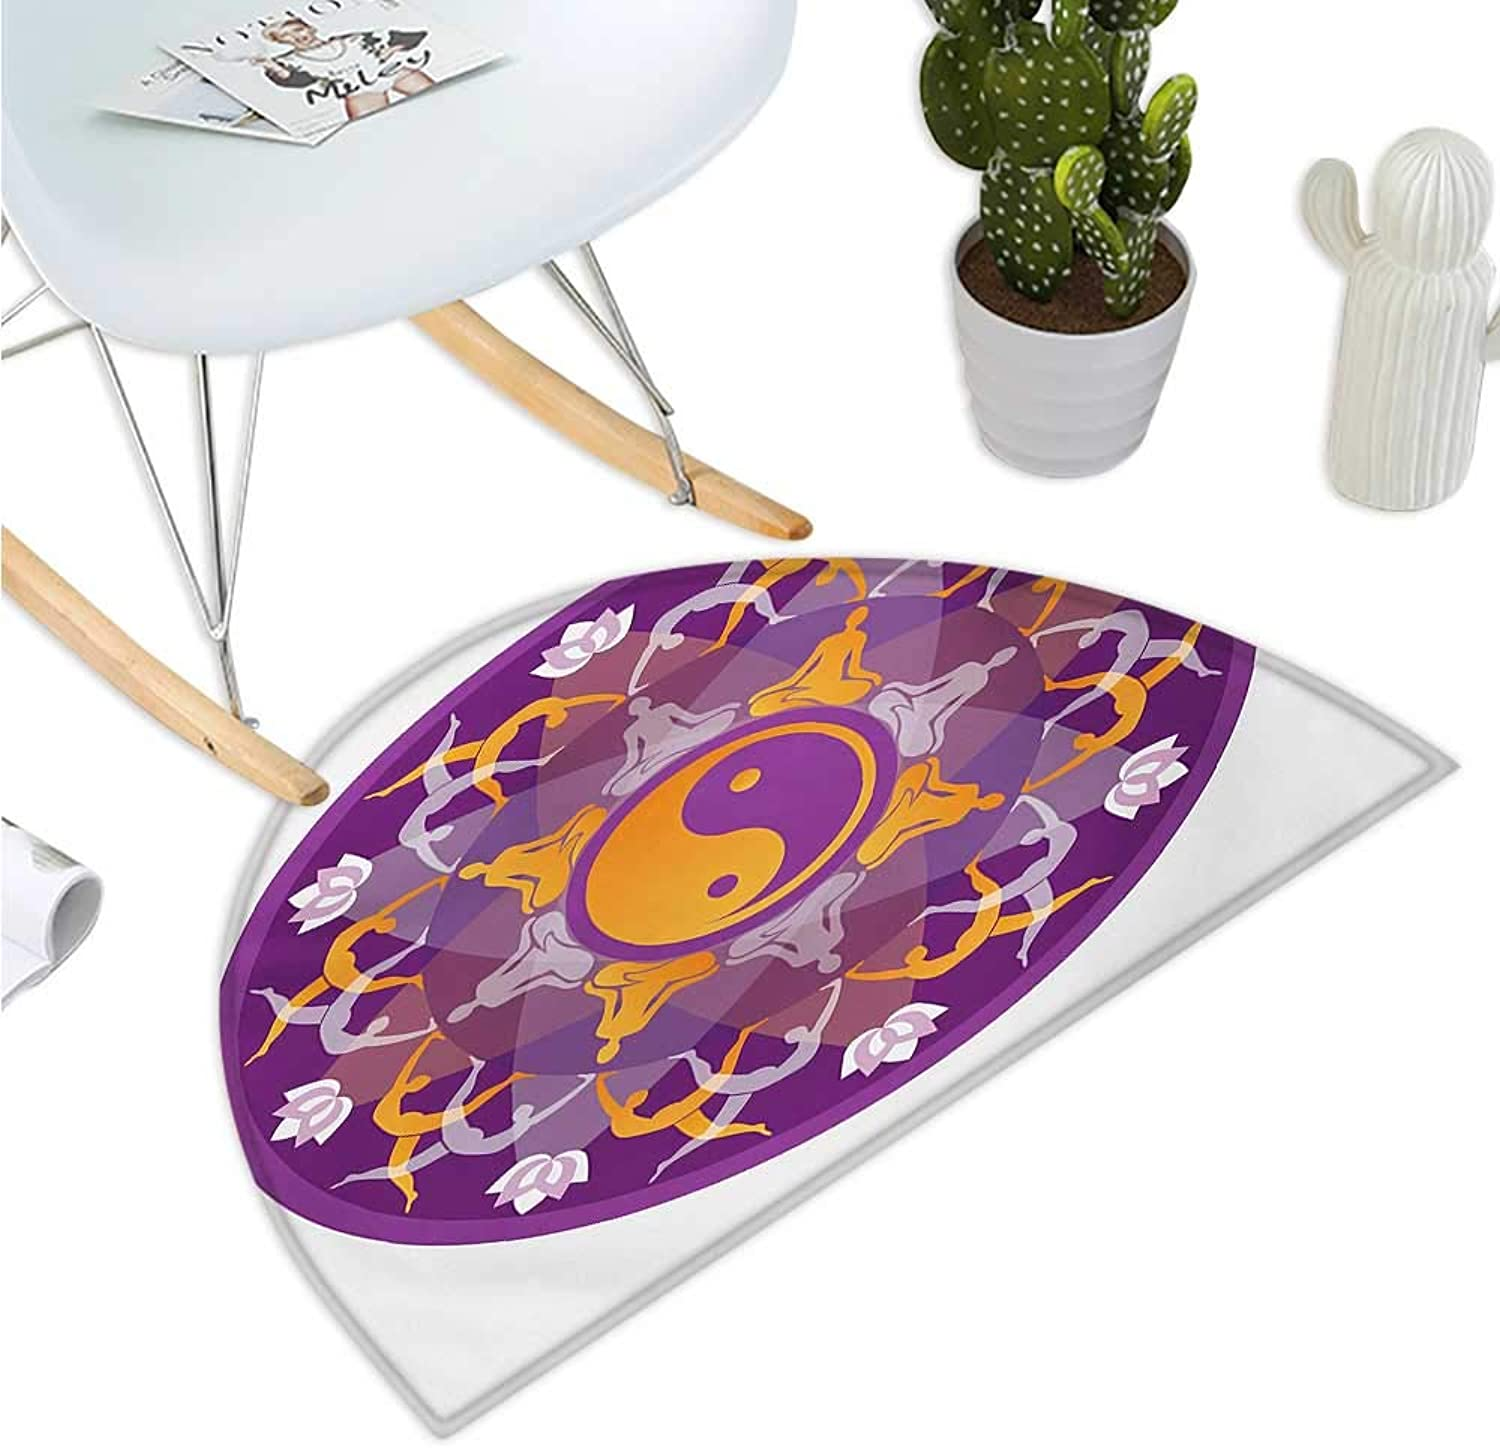 Yoga Semicircle Doormat Mandala Background Yoga Symbols and Positions Yin Yang Zen Meditation Pattern Halfmoon doormats H 43.3  xD 64.9  Purple White orange